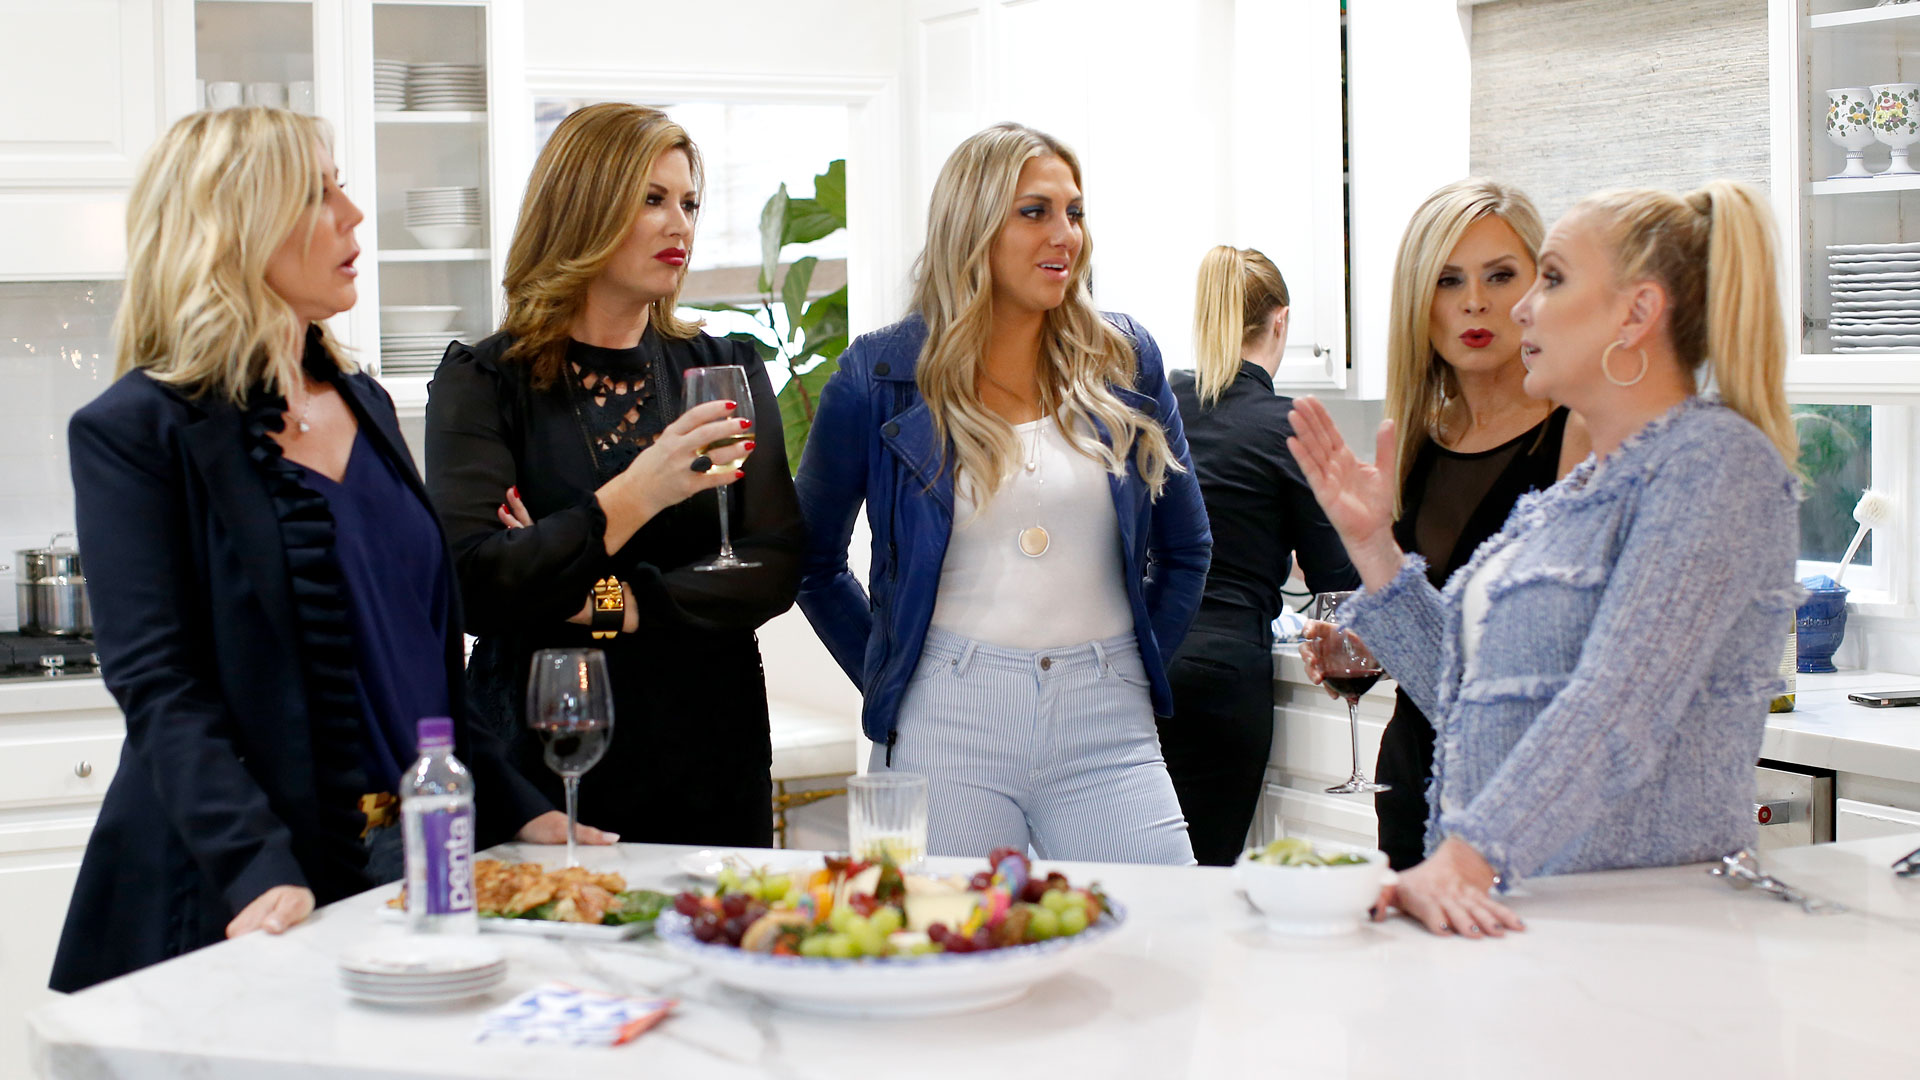 rhoc season 14 what have the ladies been up to